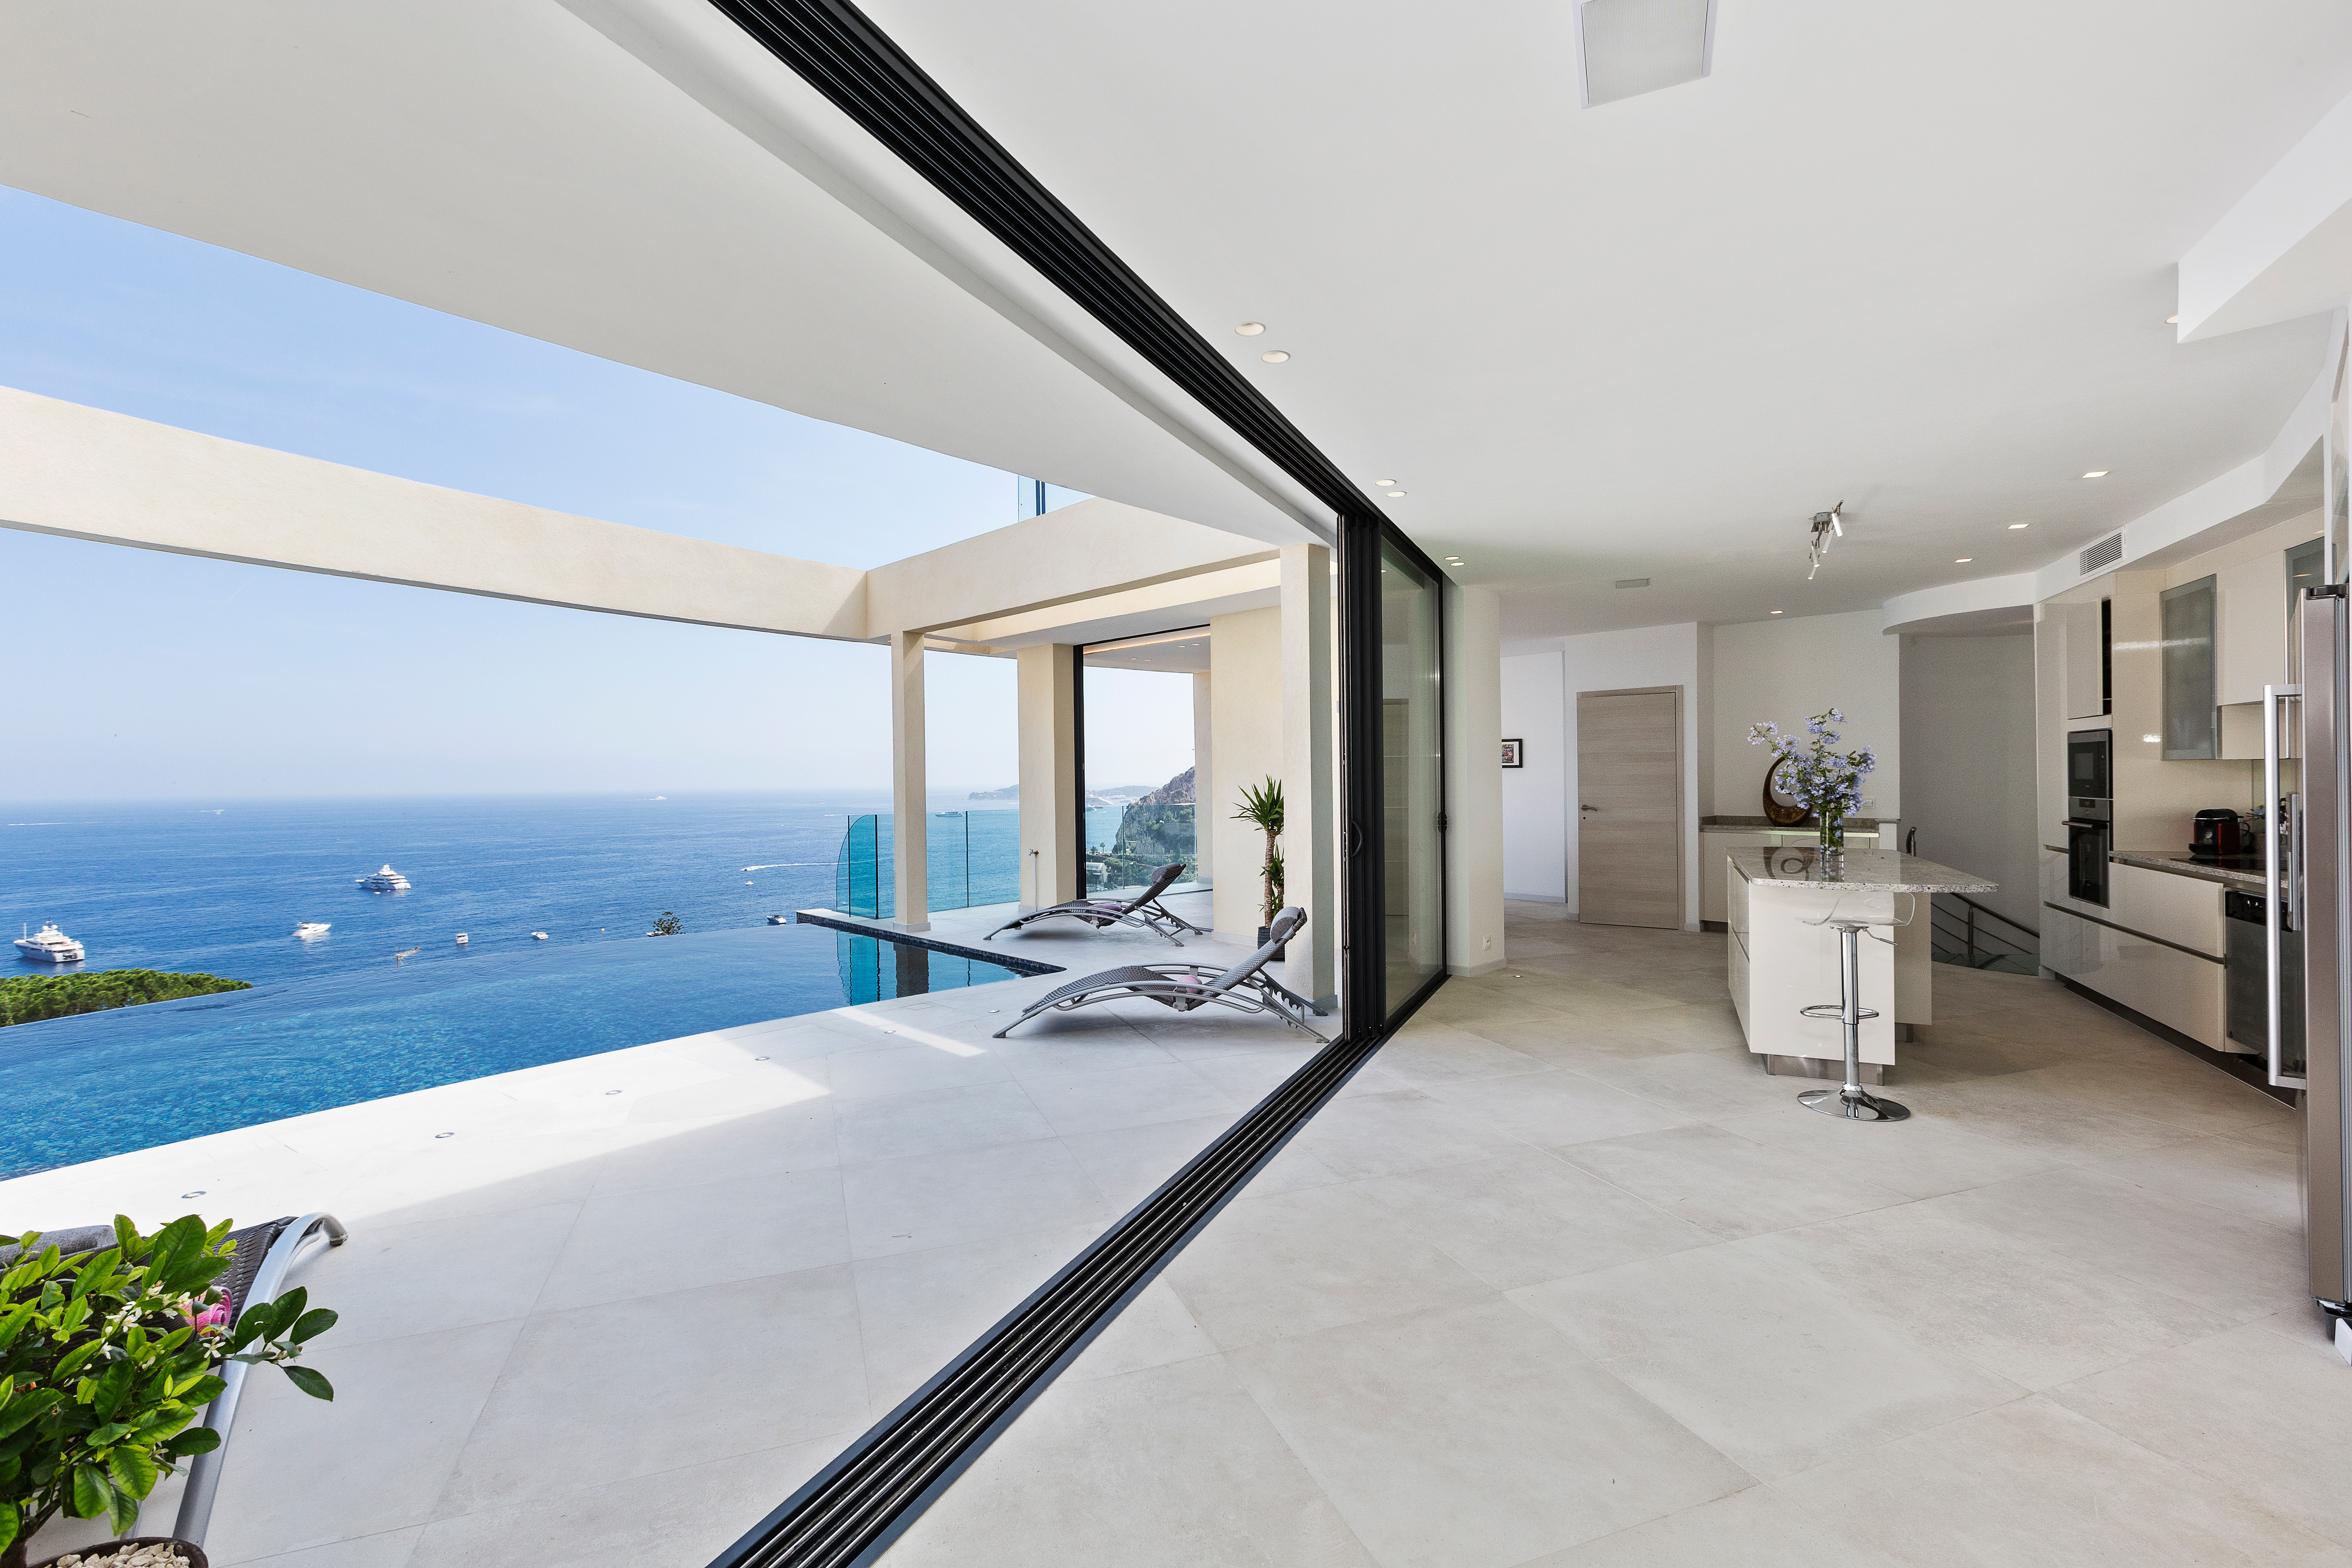 Living Room View to Terrace